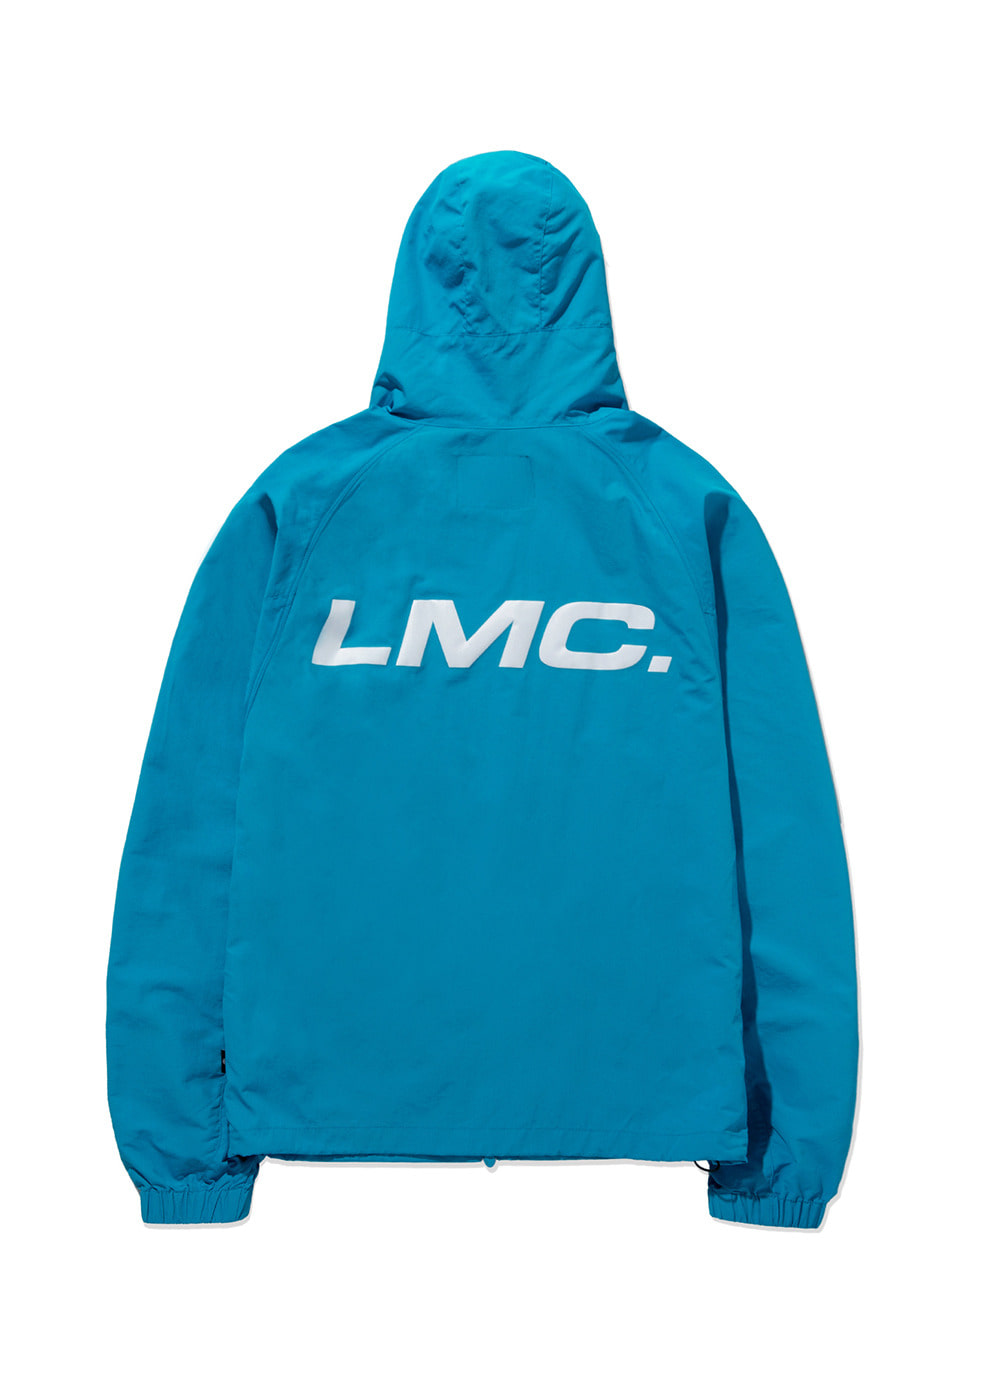 LMC LIGHT WINDBREAKER JACKET blue